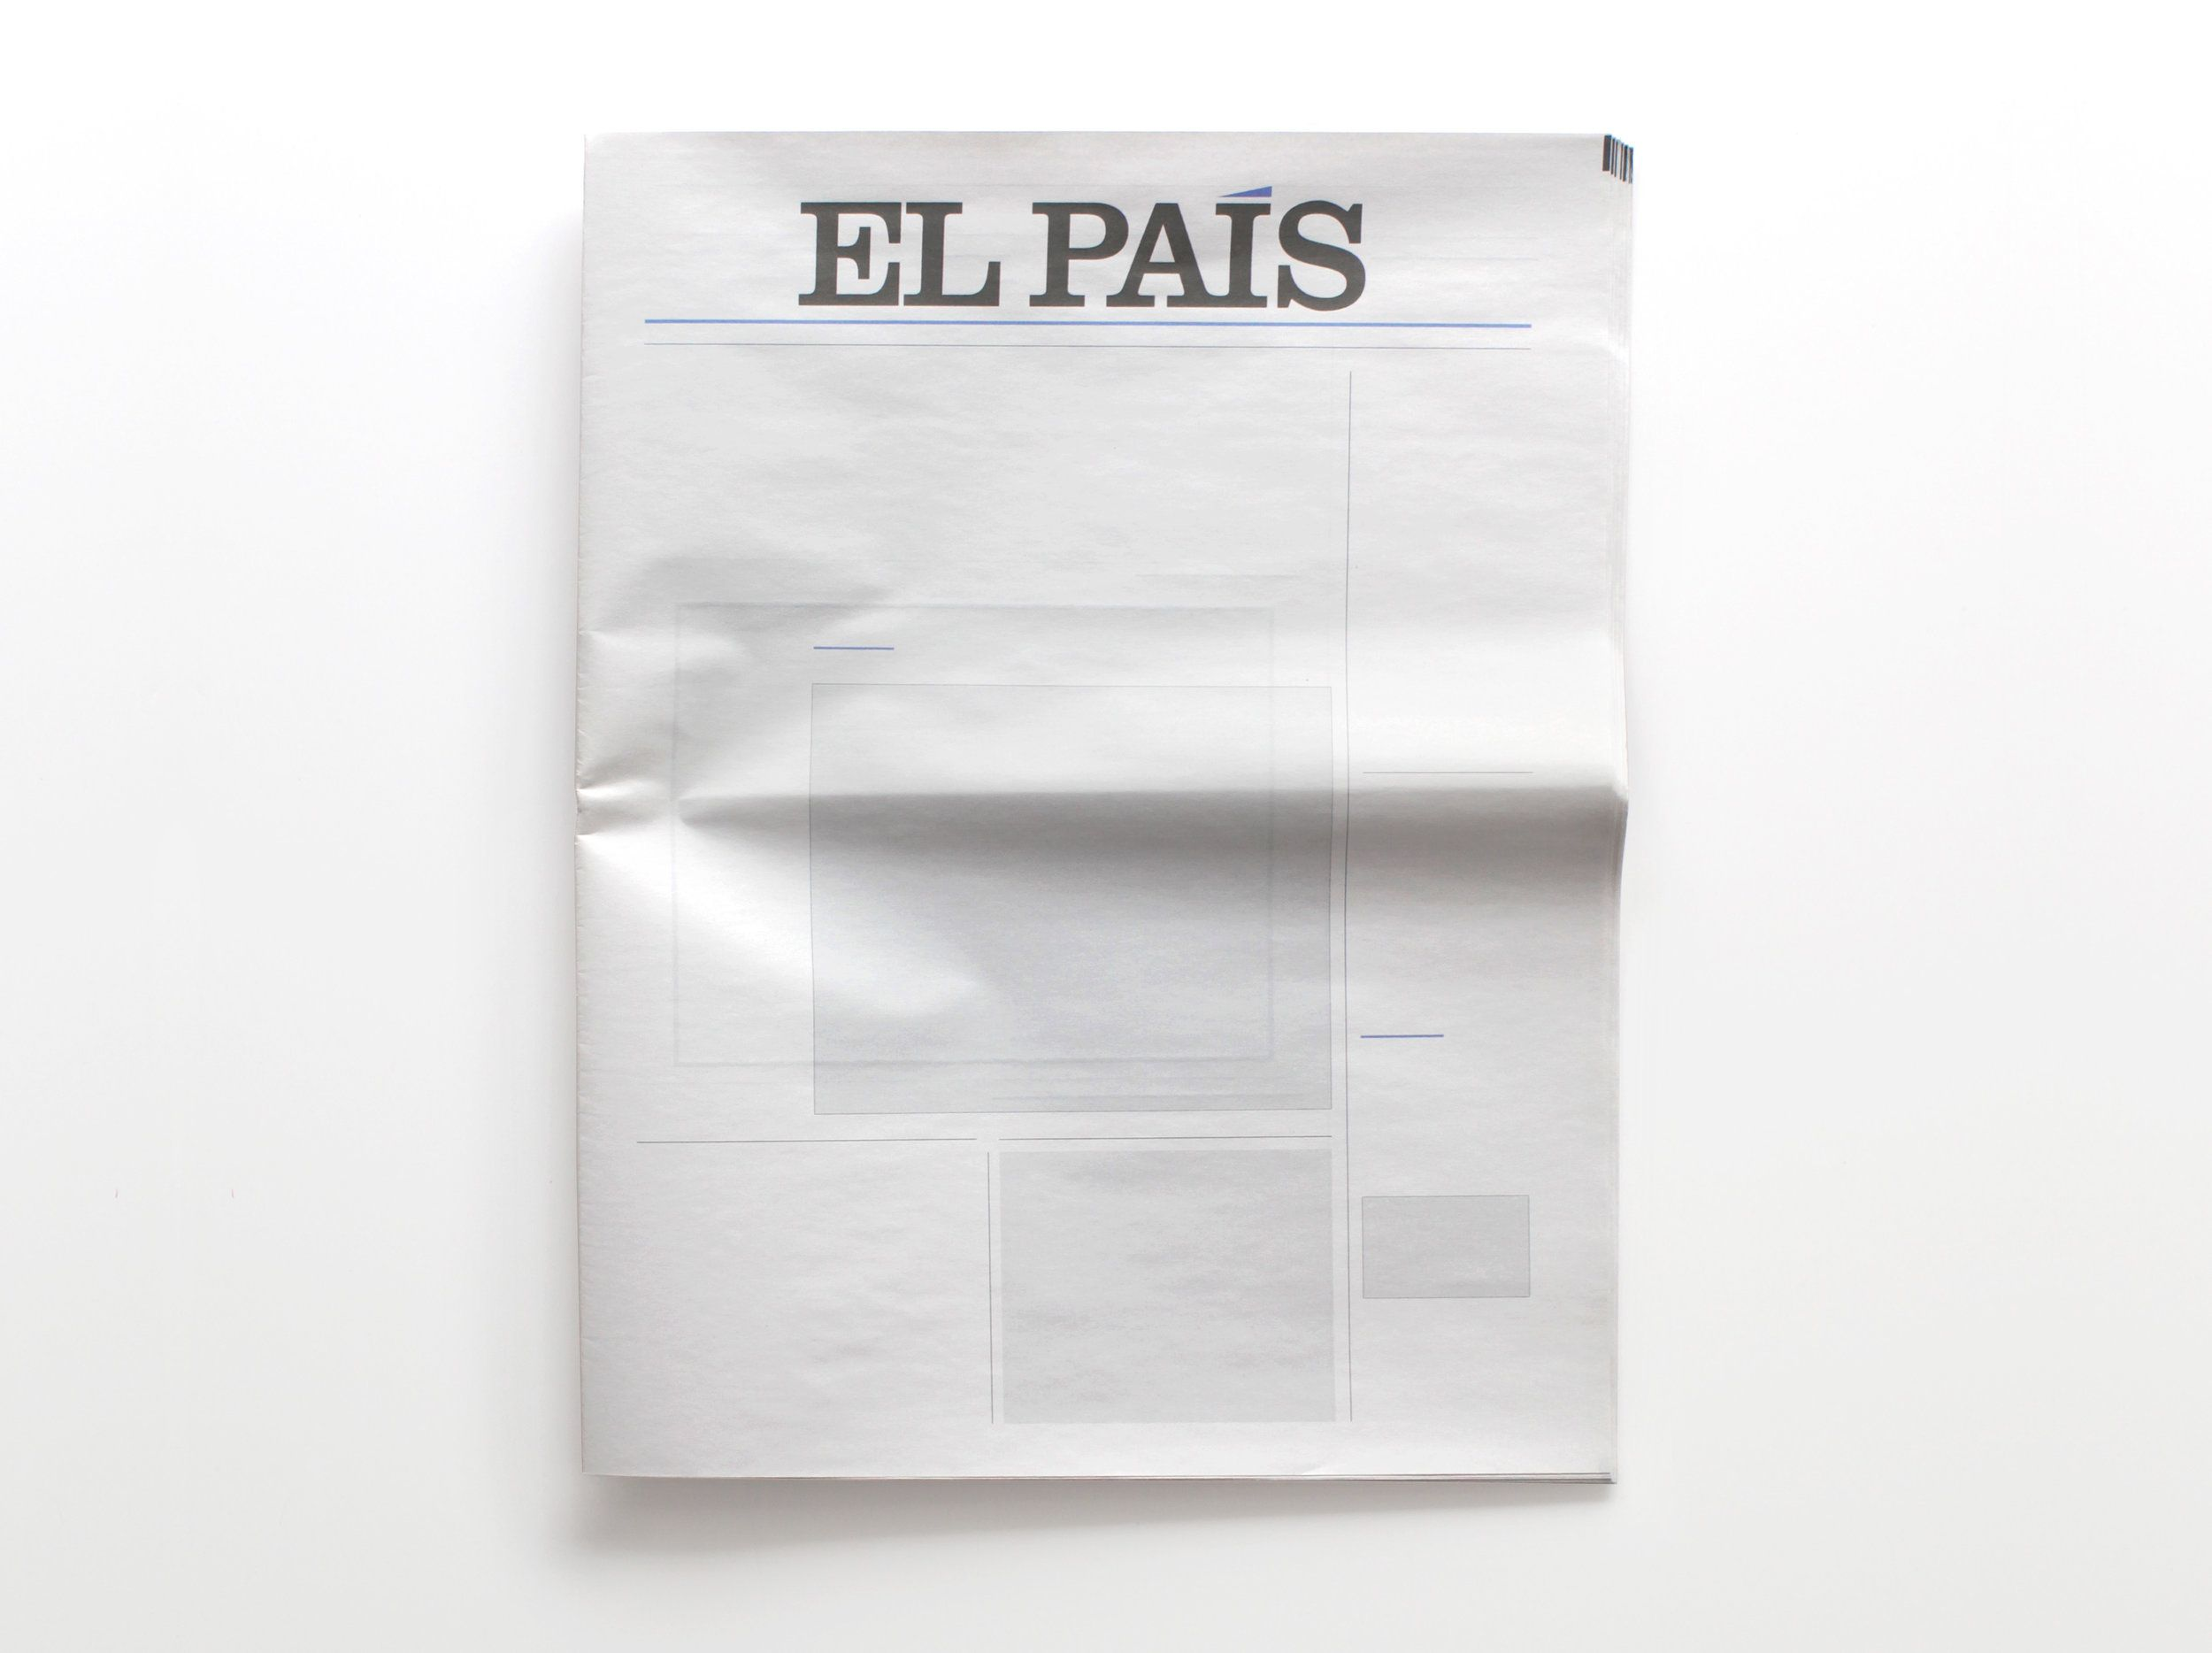 NOTHING IN EL PAÍS: Newspapers from around the world with nothing in them. By Joseph Ernst.